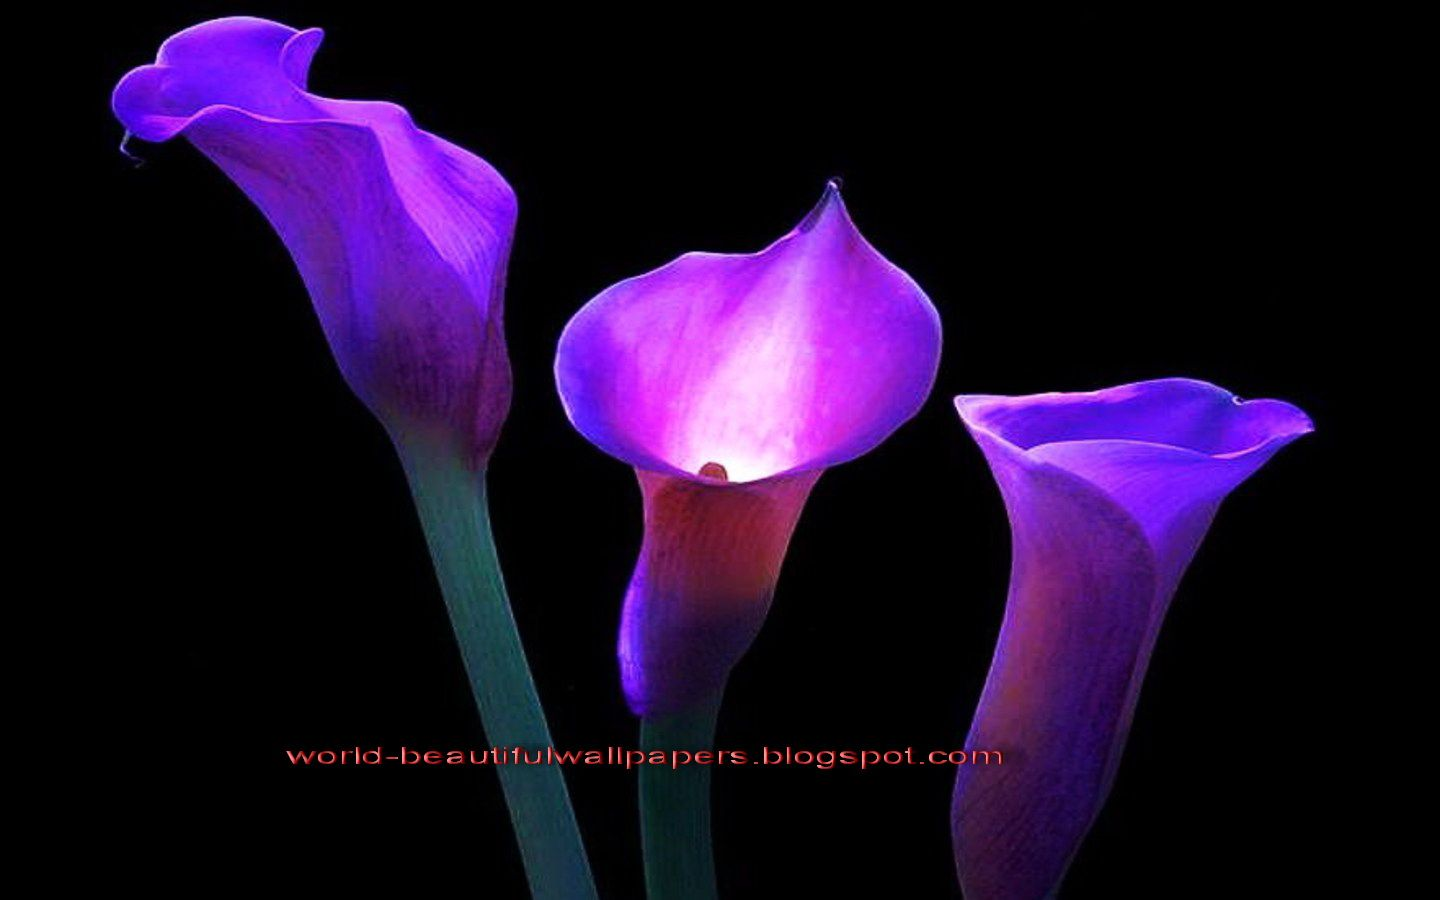 Paulbarford heritage the ruth calla lily flowers wallpaper paulbarford heritage the ruth calla lily flowers wallpaper izmirmasajfo Gallery